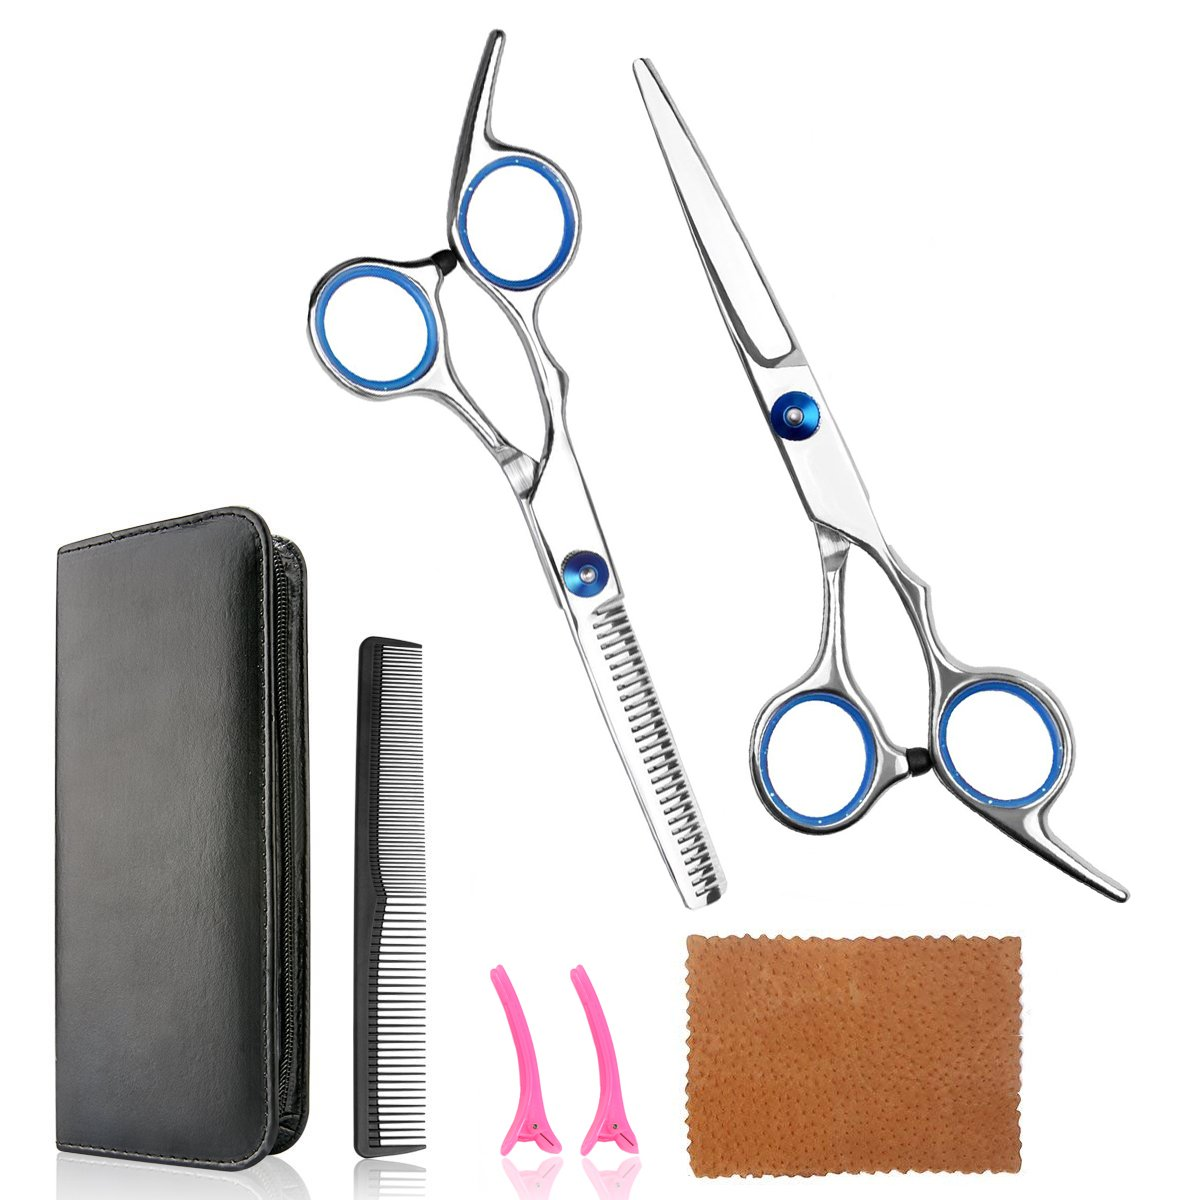 Details About Professional Barber Salon Razor Edge Hair Cutting Scissors Thinning Shears Tools